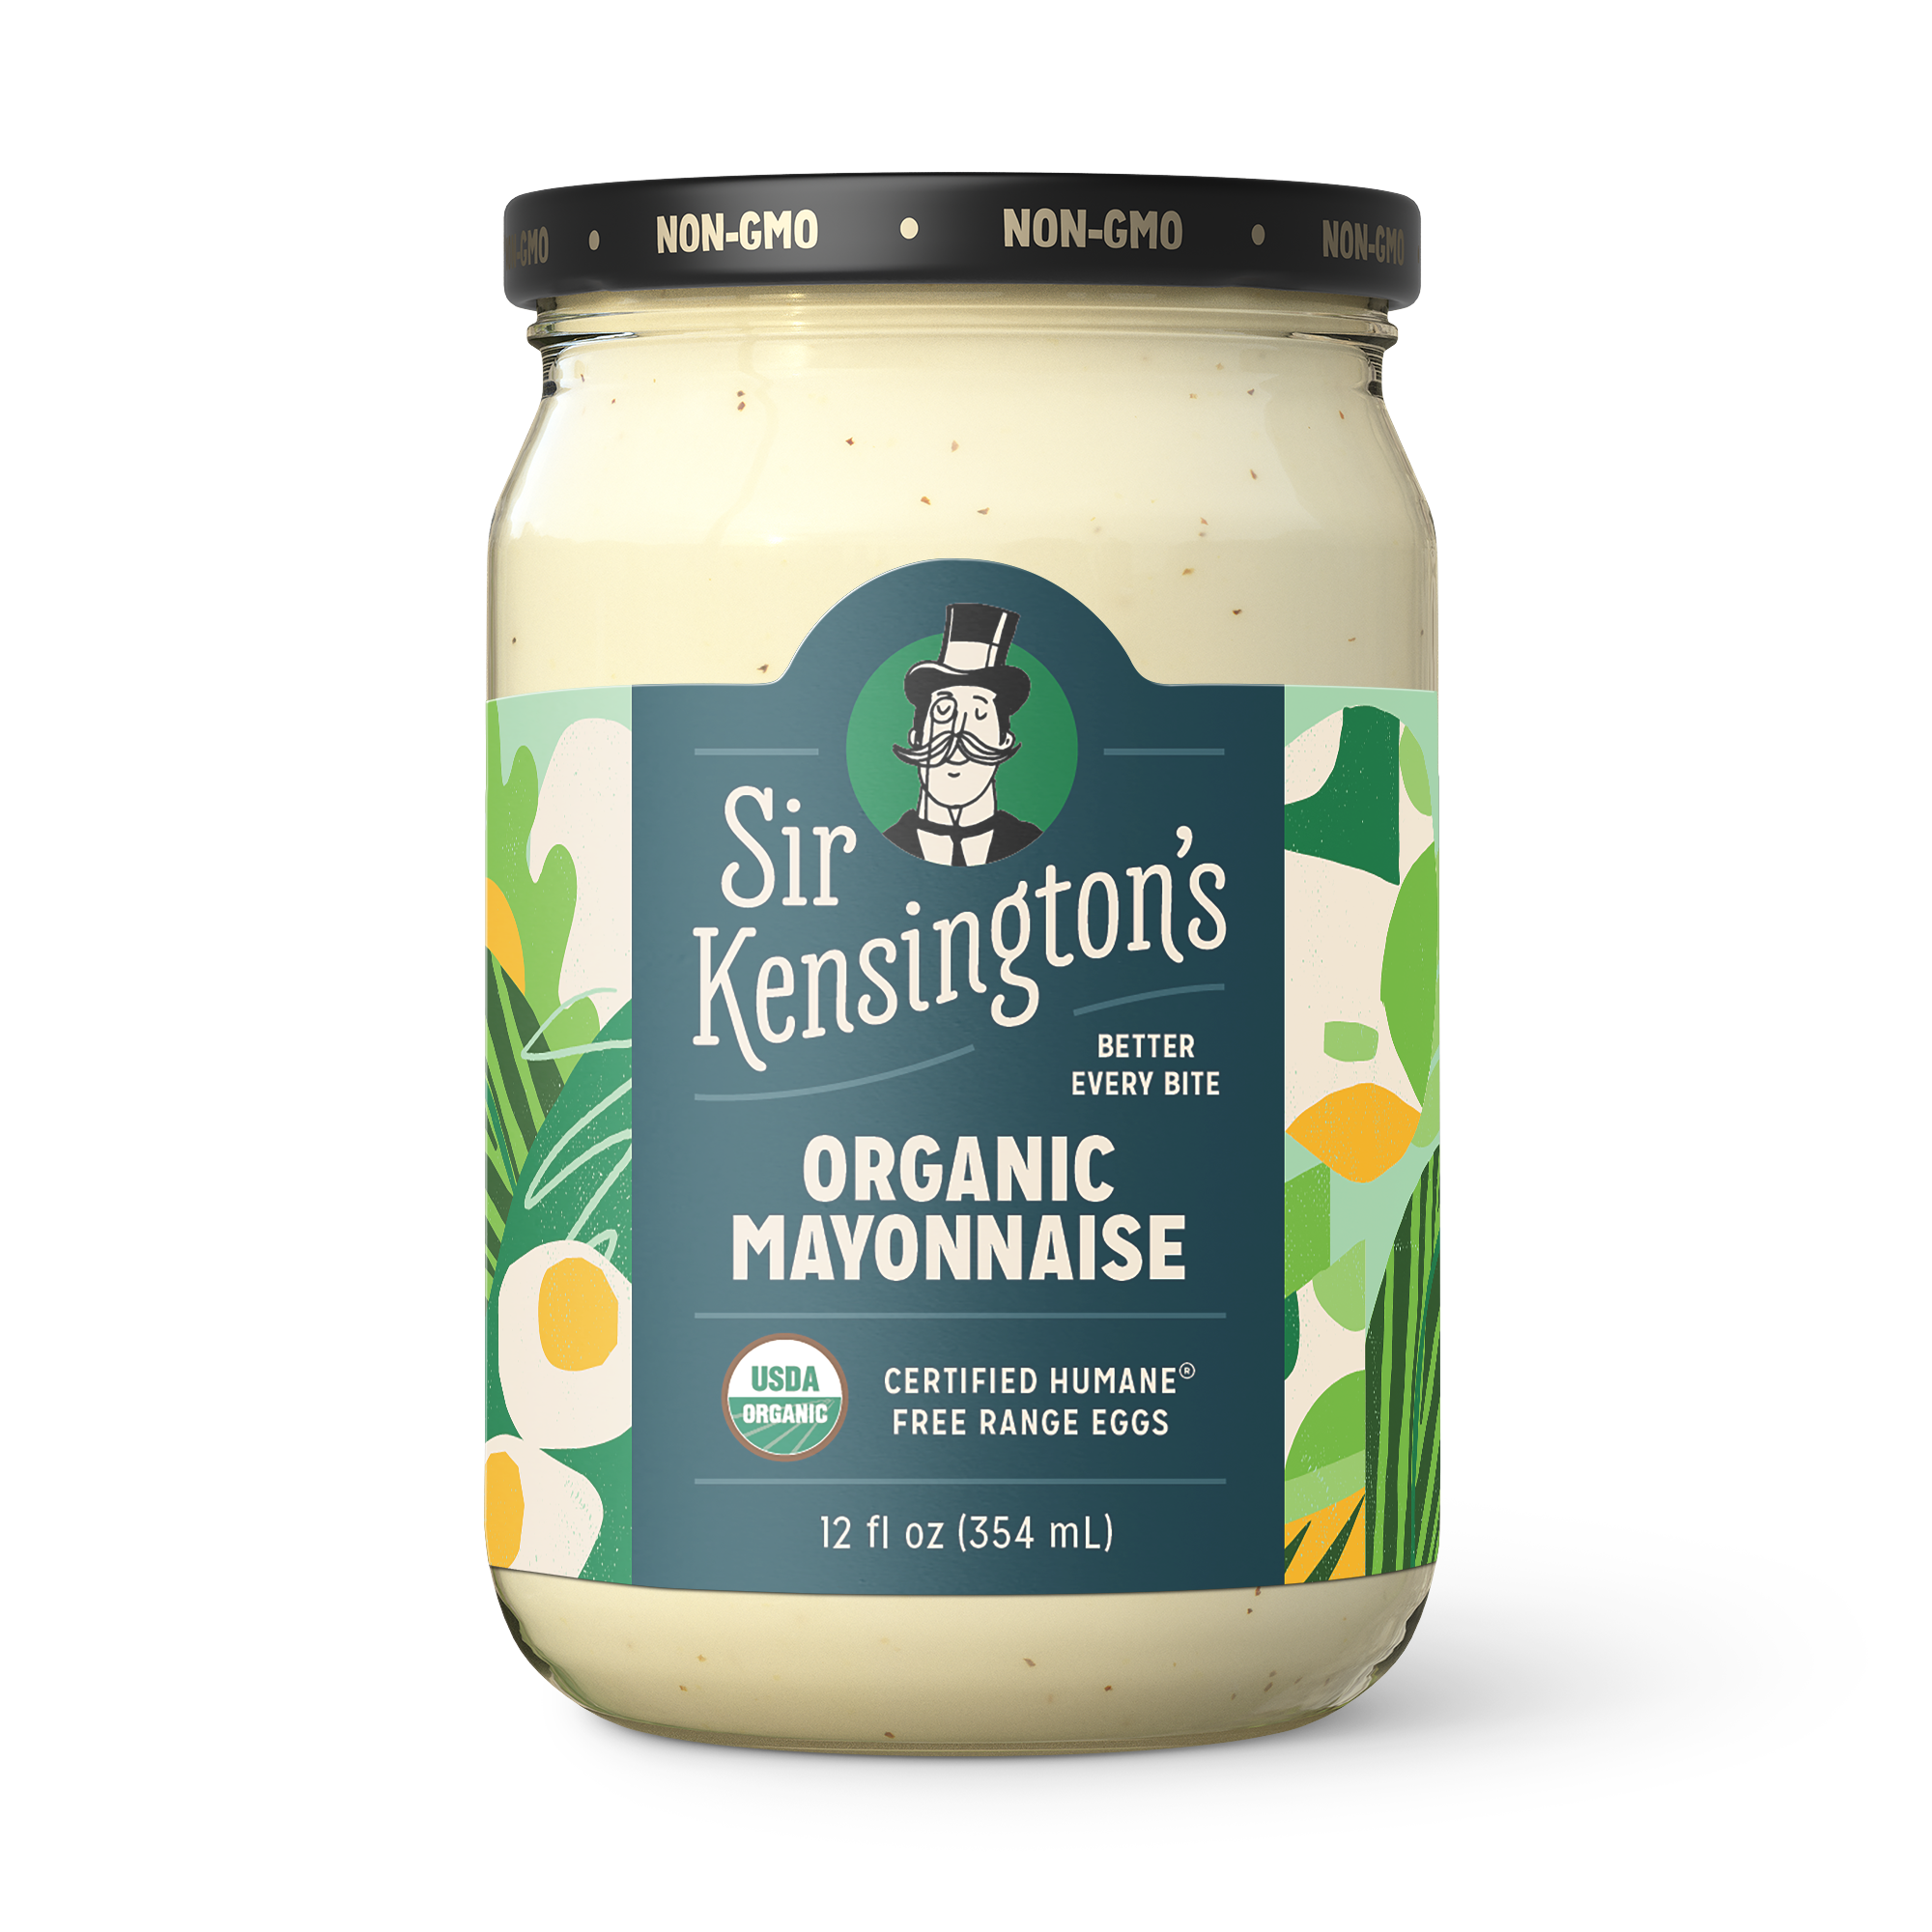 Image of Organic Mayonnaise